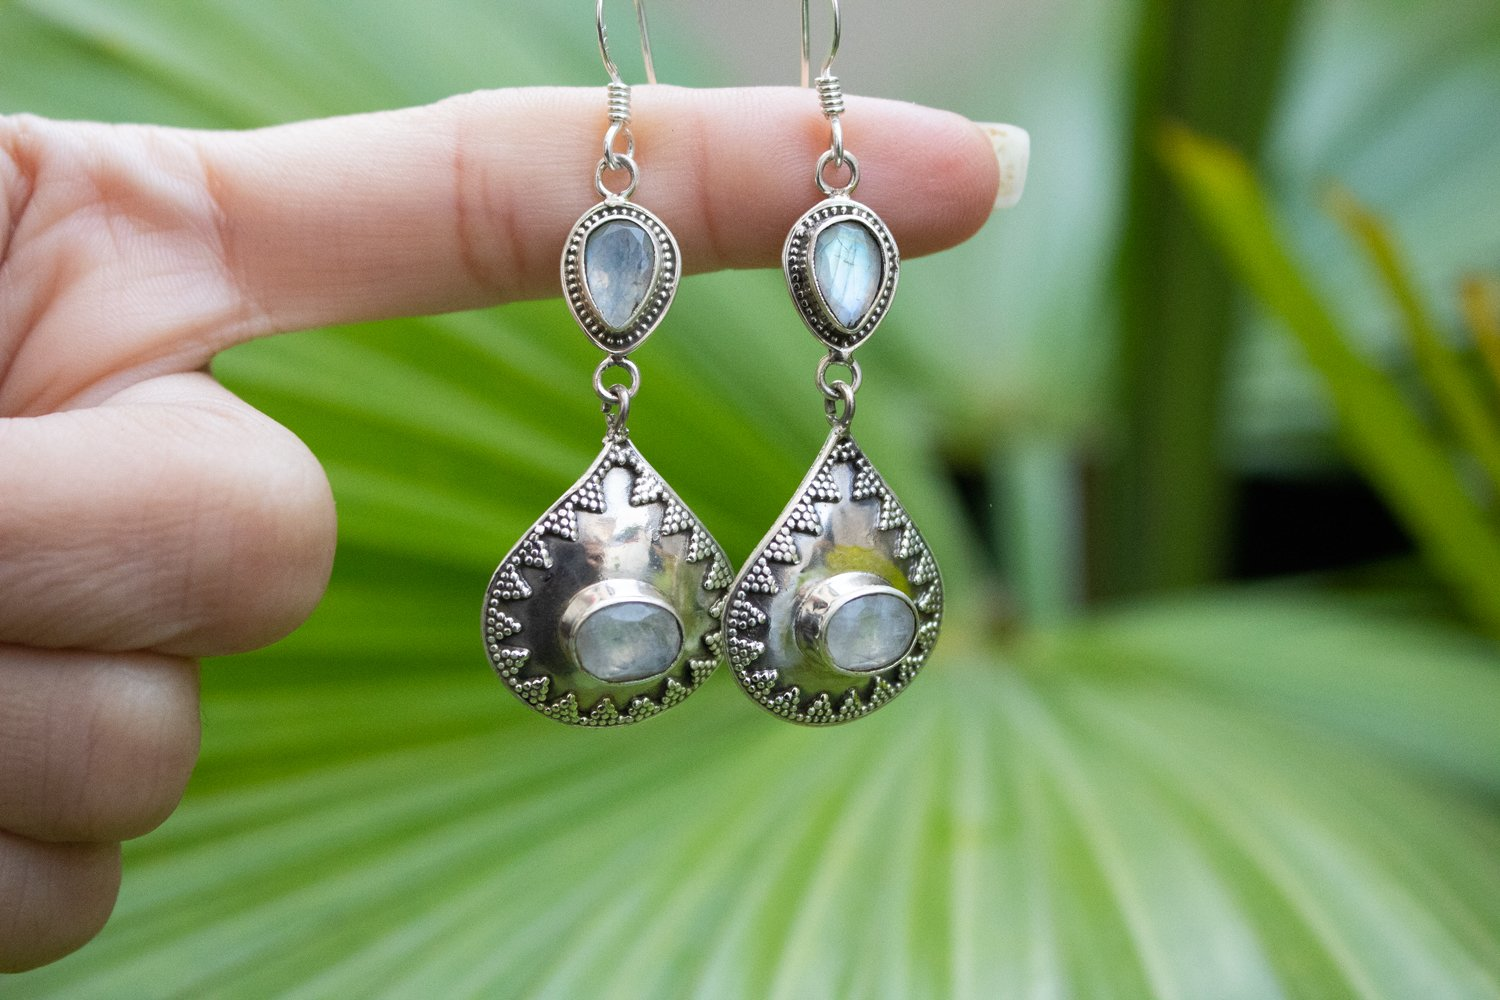 Handmade Sterling Silver Moonstone Earrings AE-1043 - Its Ambra